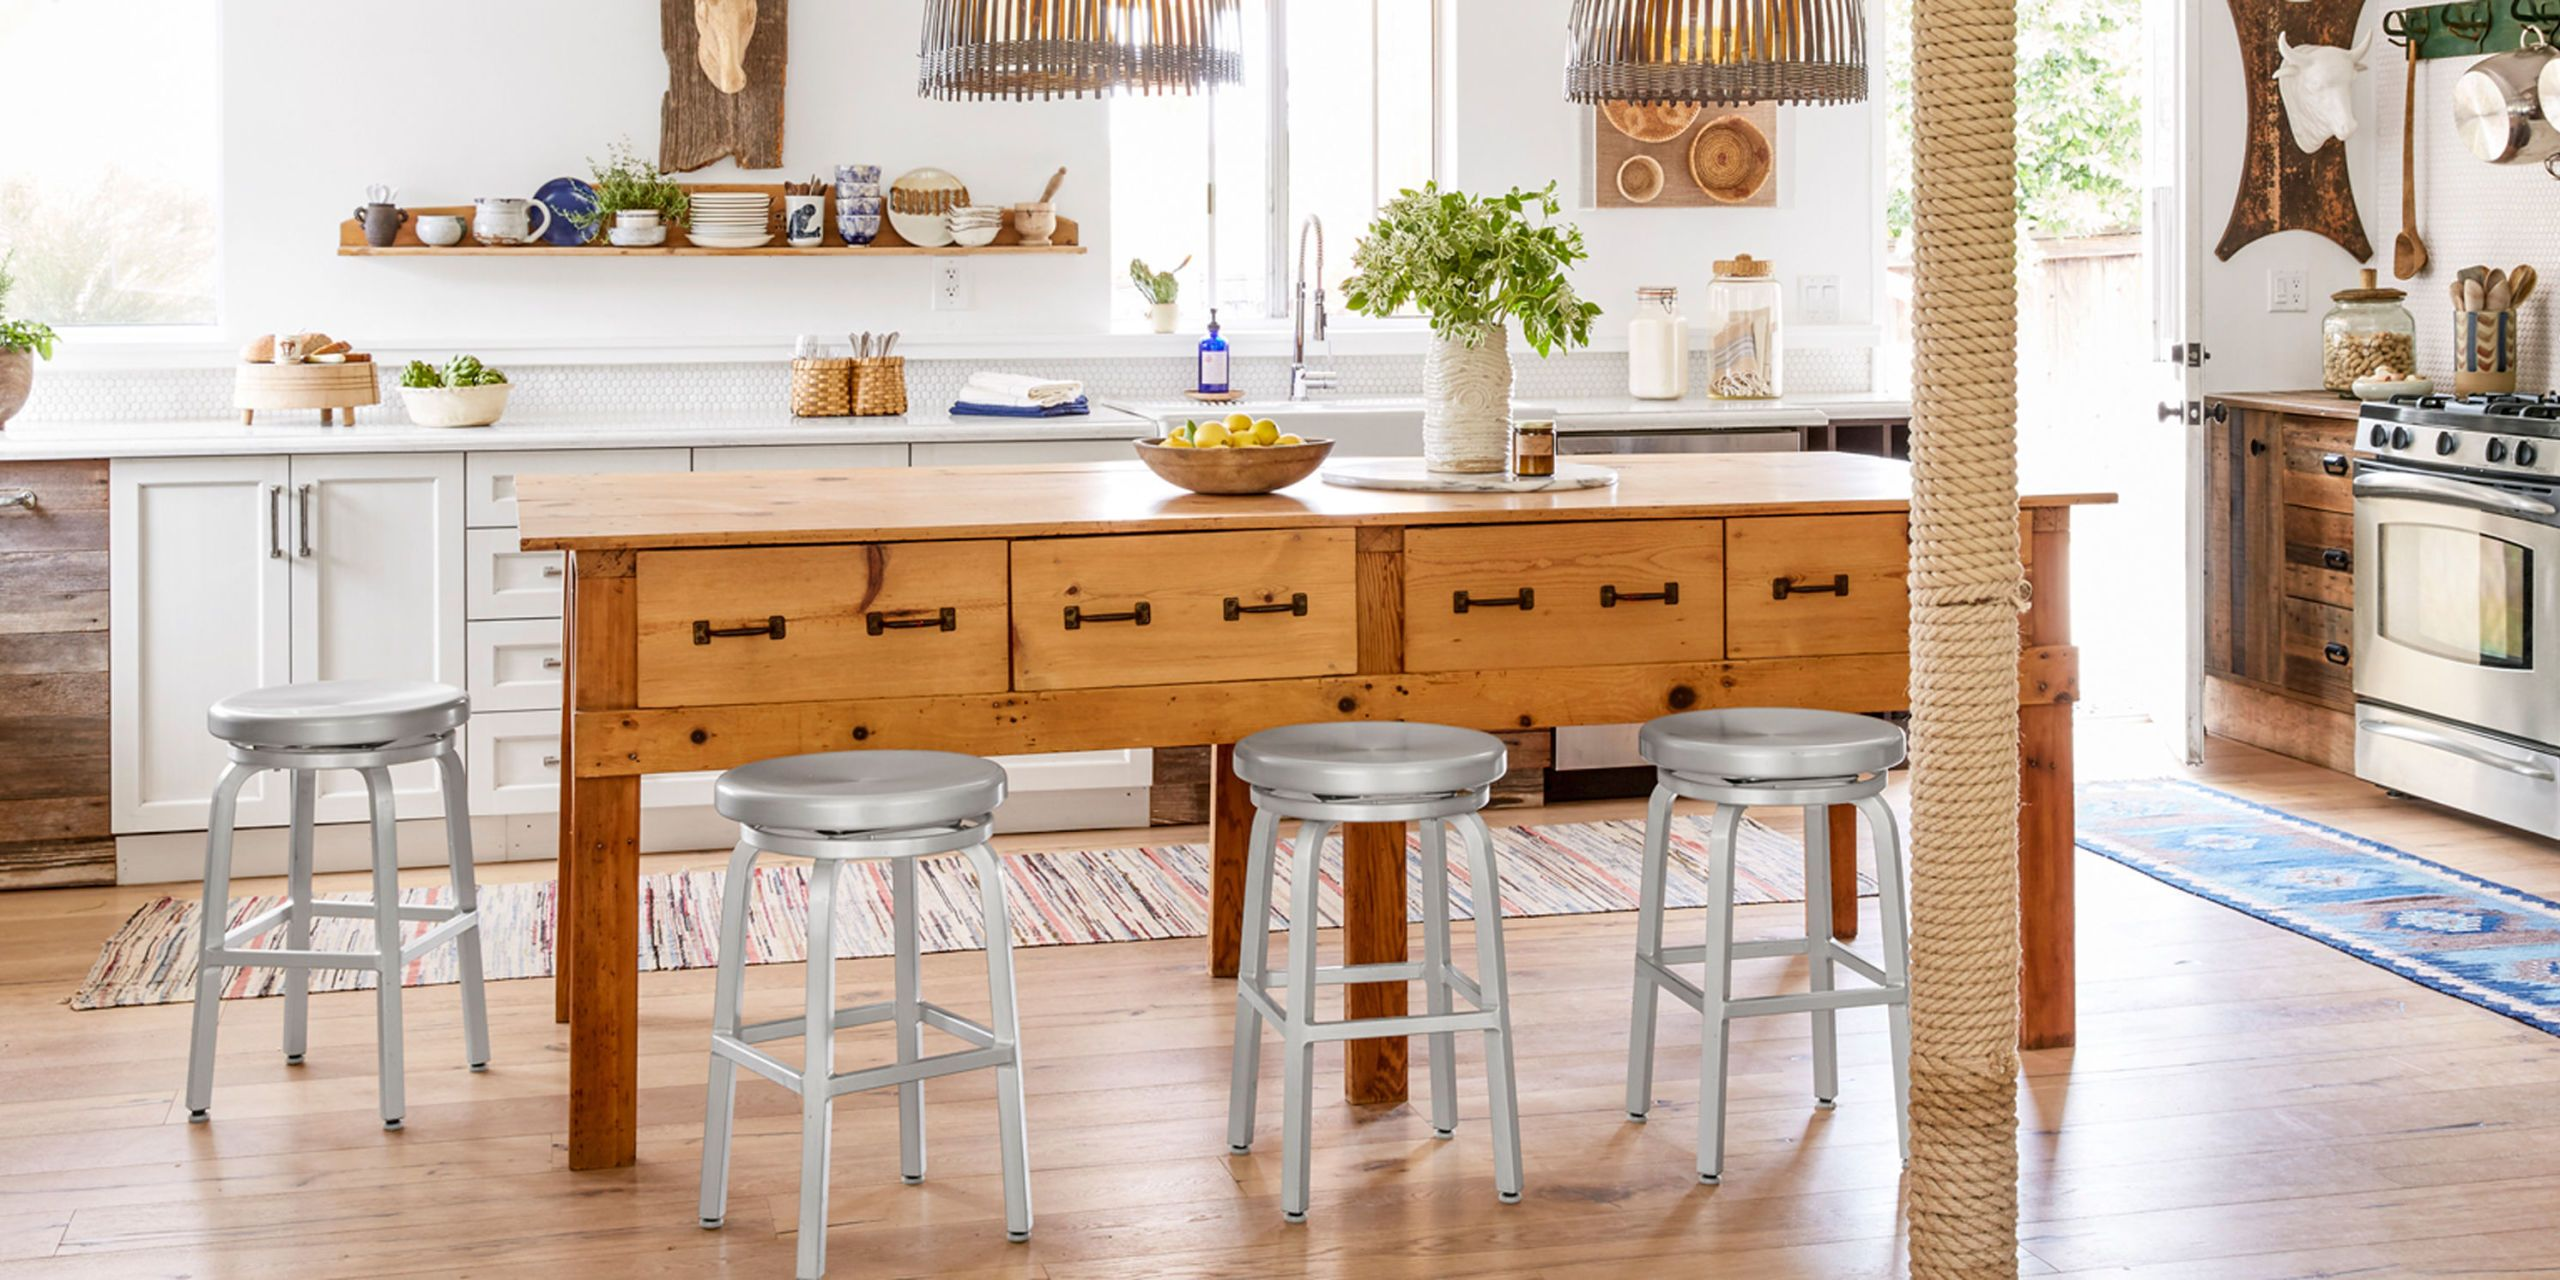 Ordinaire Add Storage, Style, And Extra Seating With A Standalone Kitchen Island.